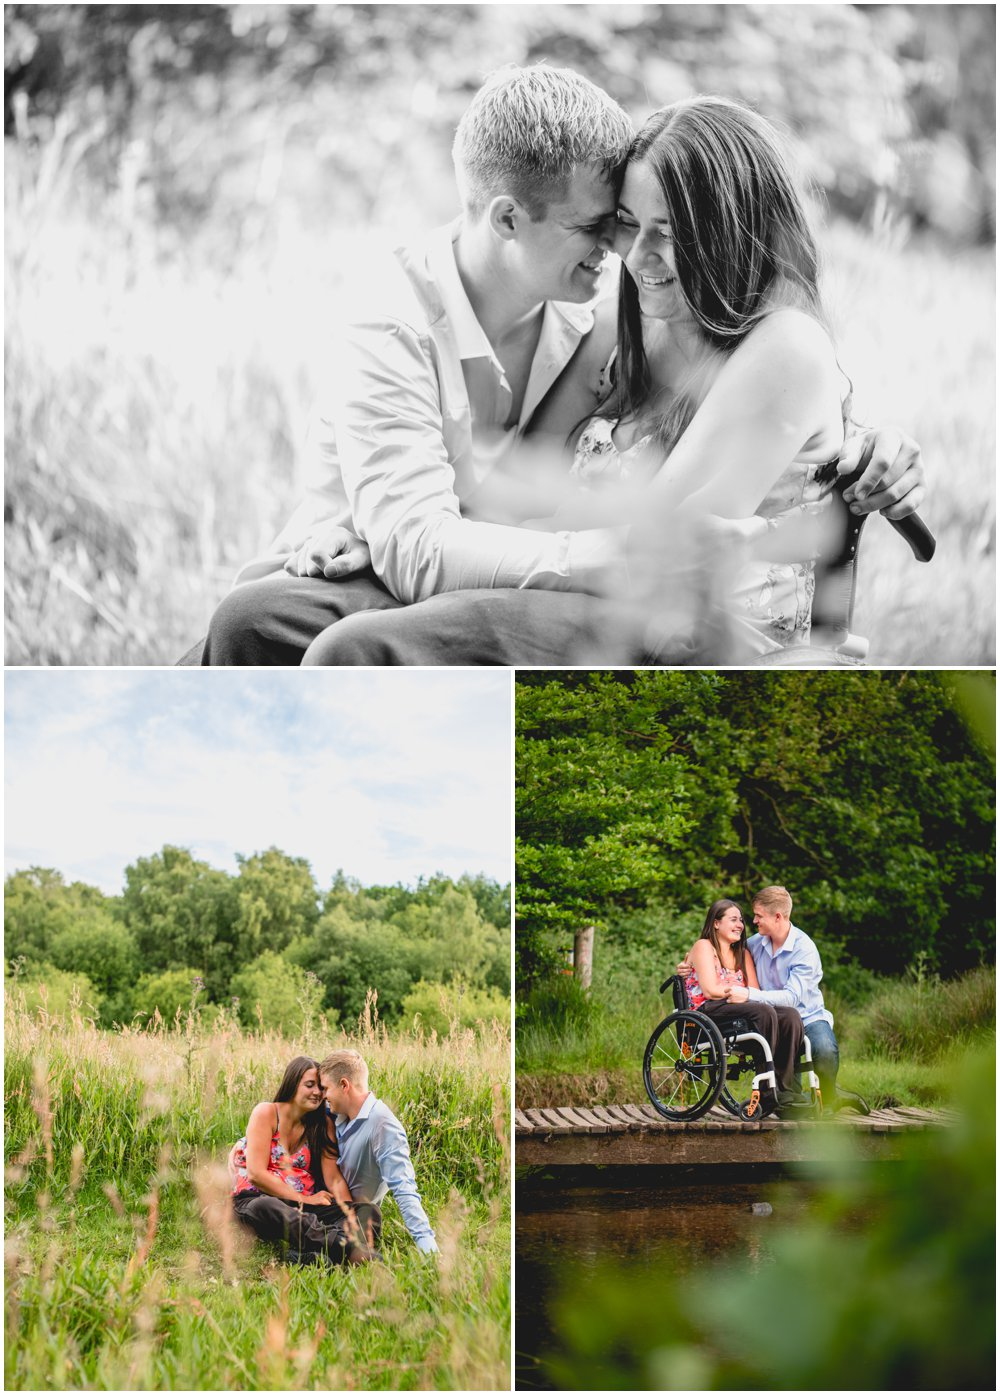 Jessica and Chris, engagement shoot in Sutton Park, Sutton Coldfield with wheelchair, photos by Lisa Carpenter Photography, Birmingham based wedding photographer